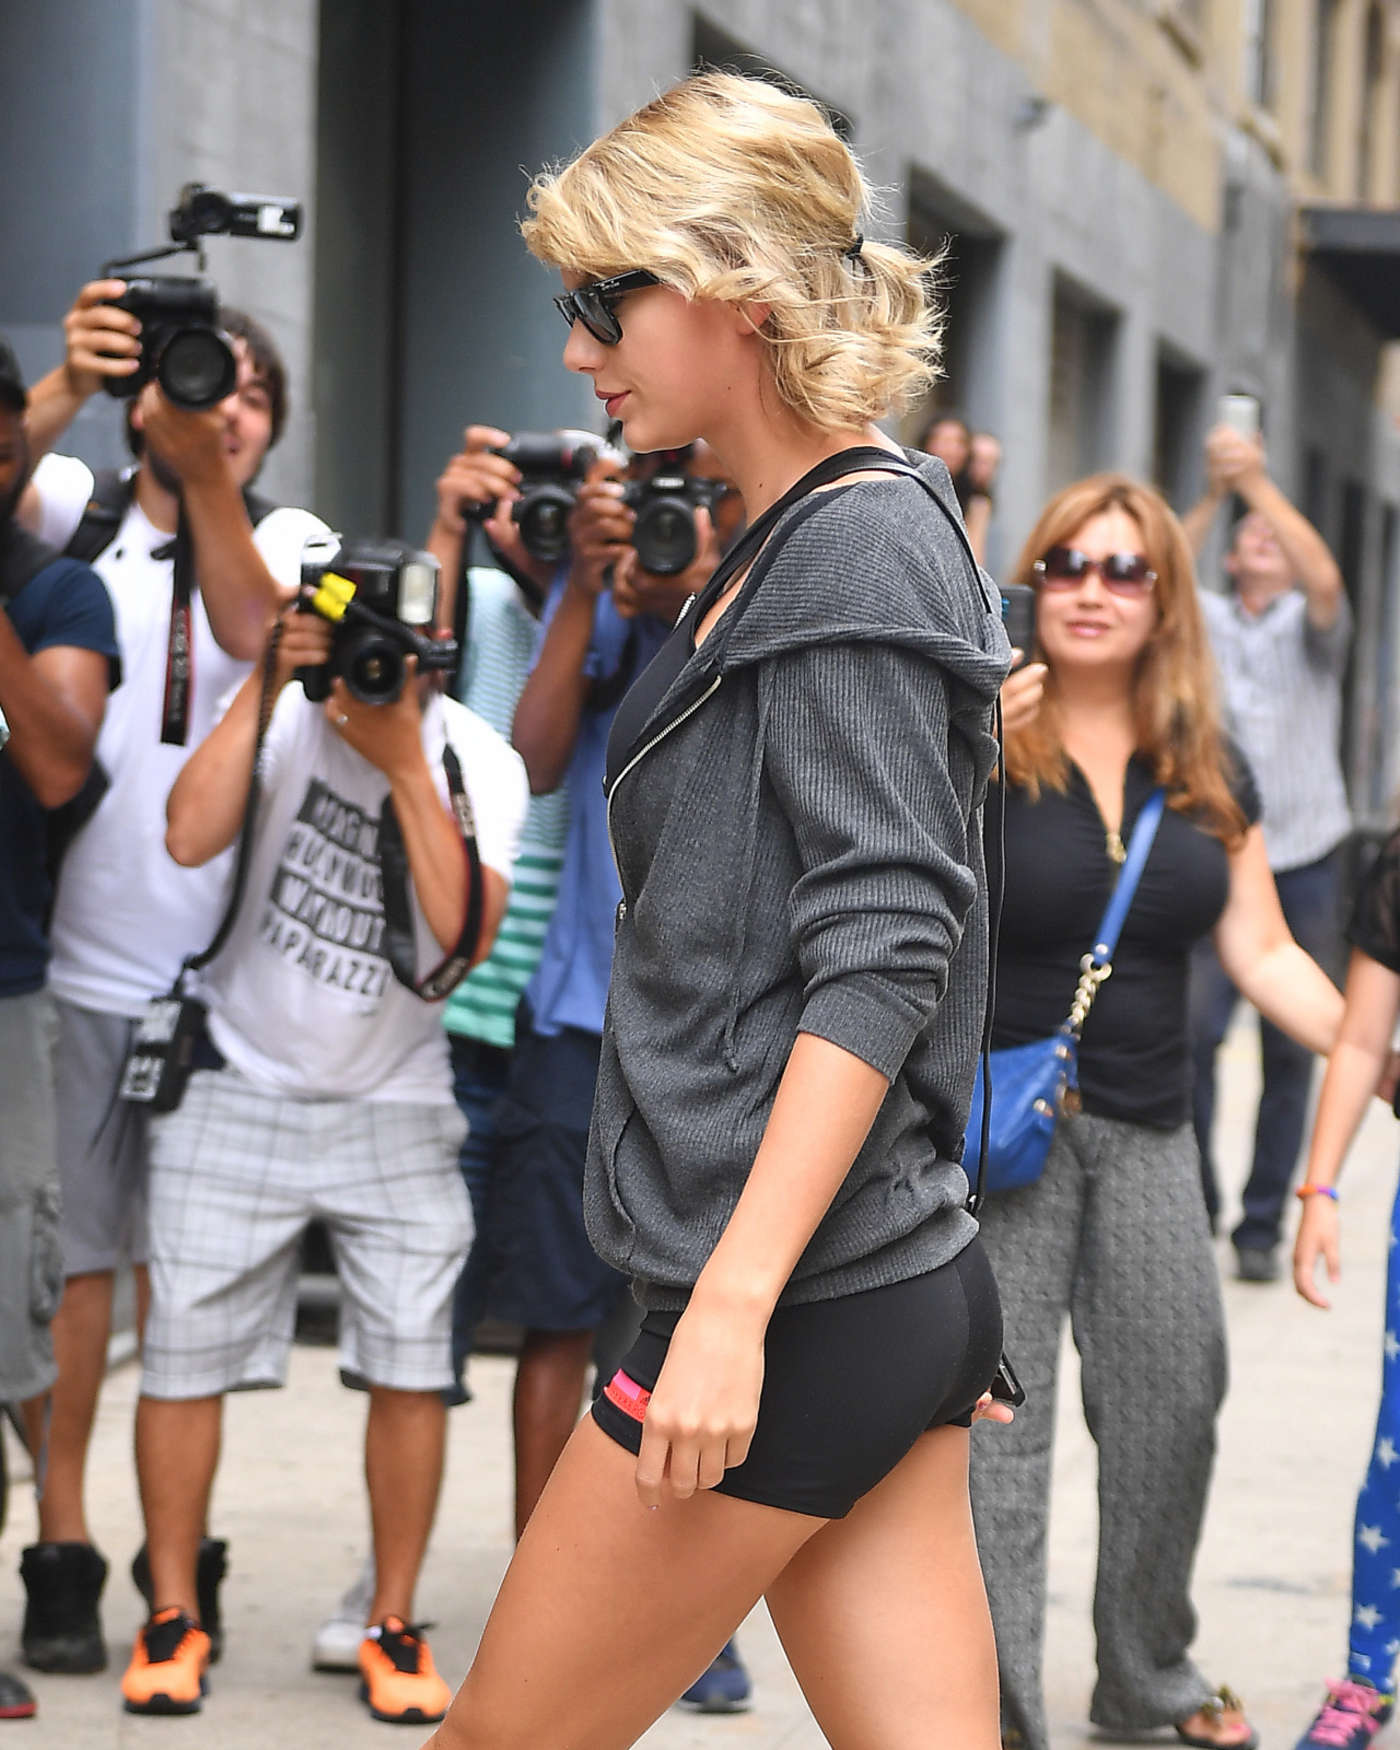 Taylor Swift Booty In Tiny Shorts 02 Gotceleb